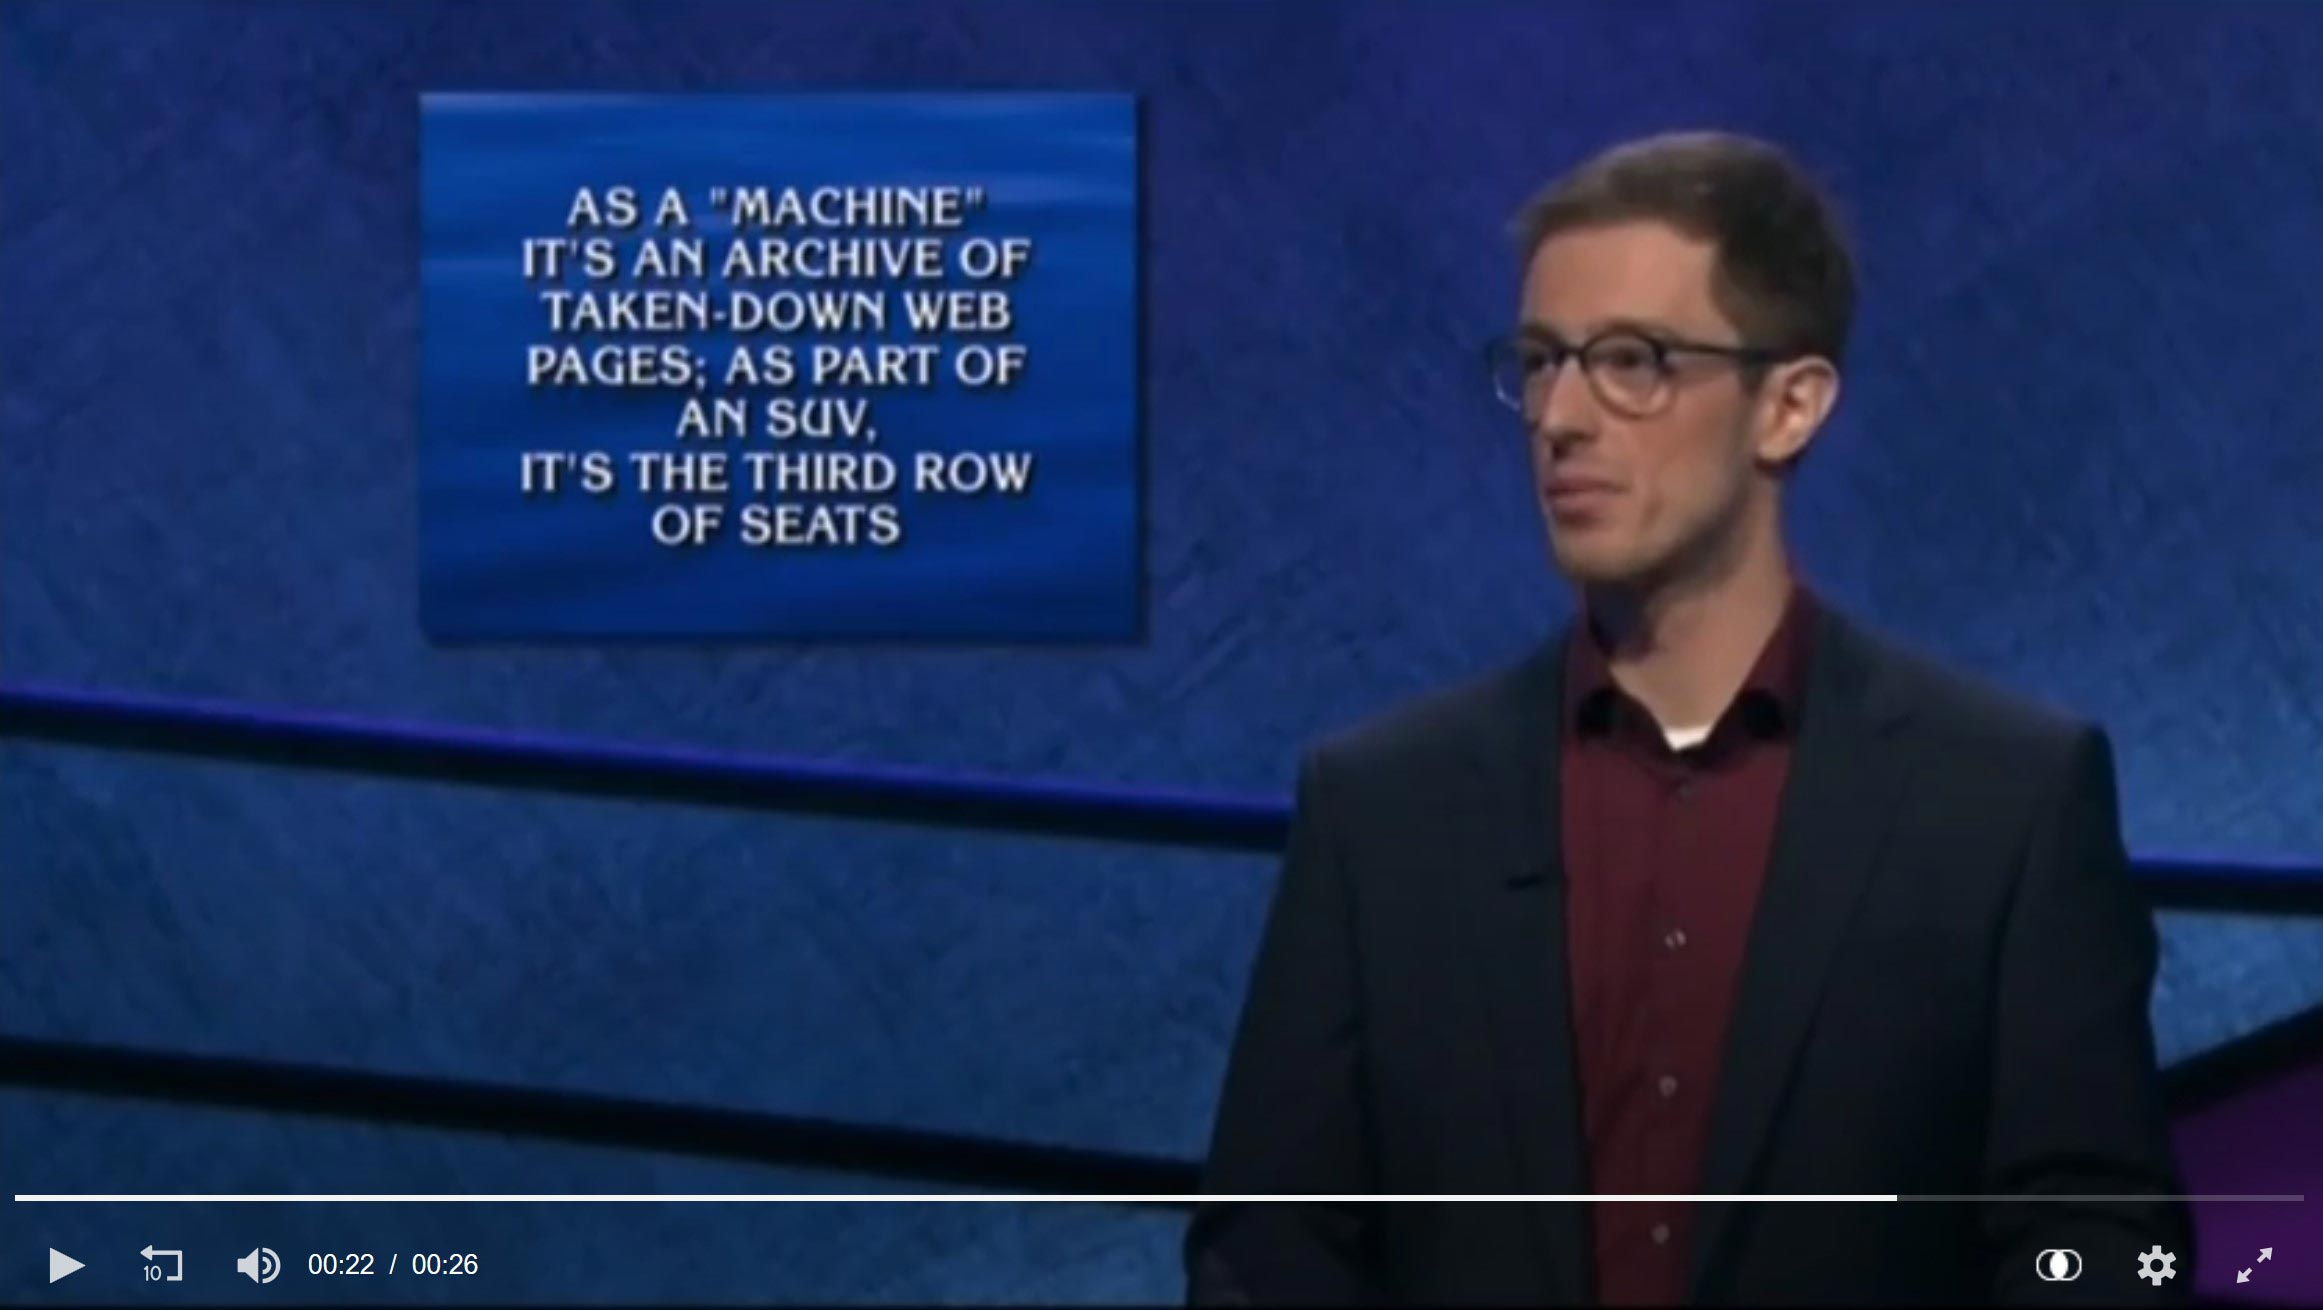 Wayback Machine is the Answer on Jeopardy!